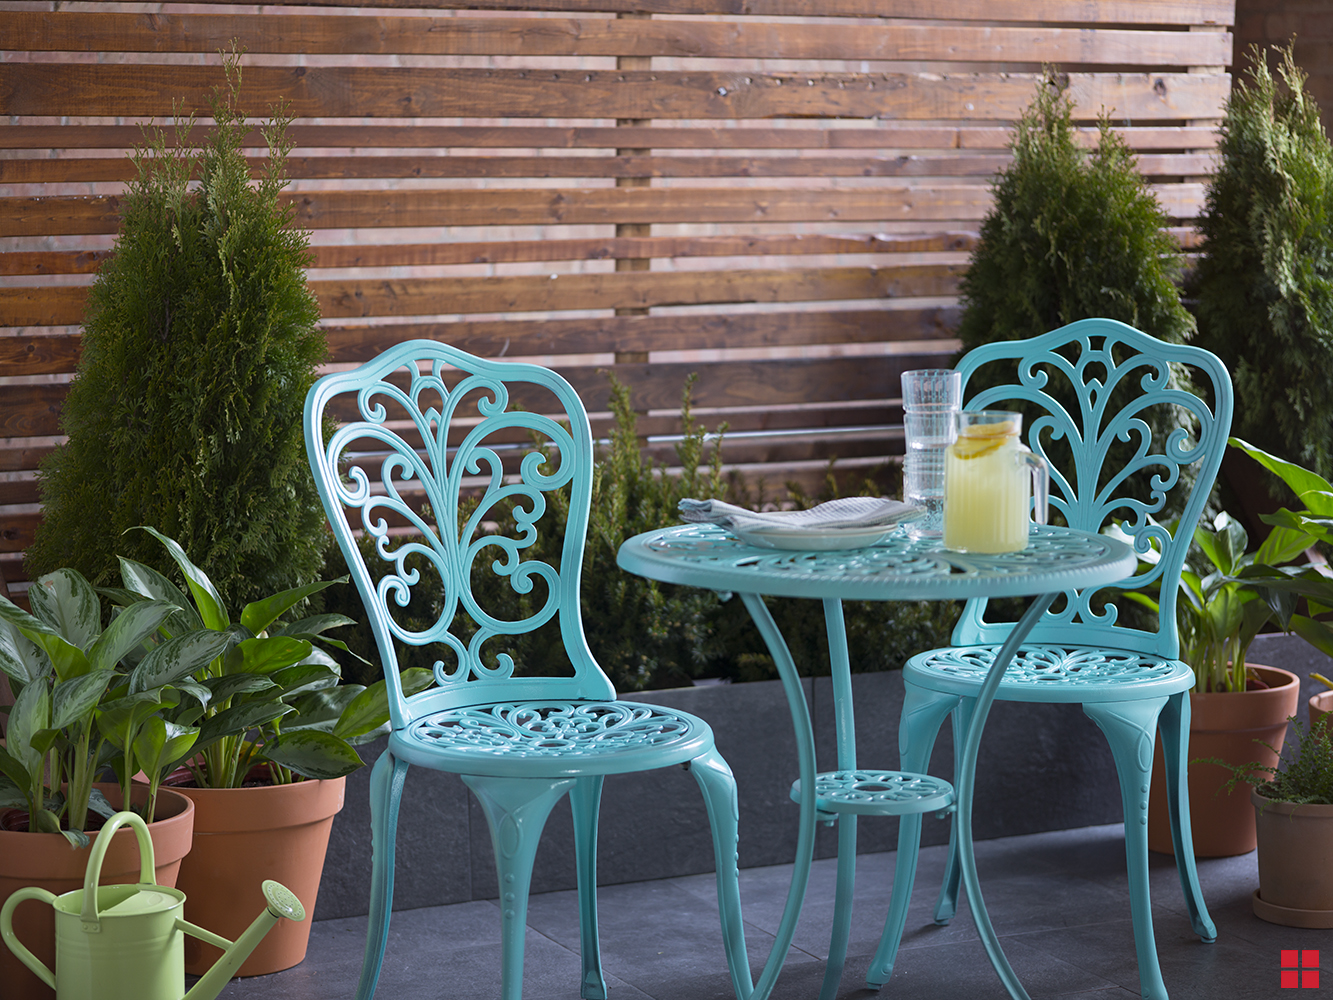 Metal Bistro Table And Chairs Refinish An Outdoor Bistro Table With Painter S Touch Ultra Cover